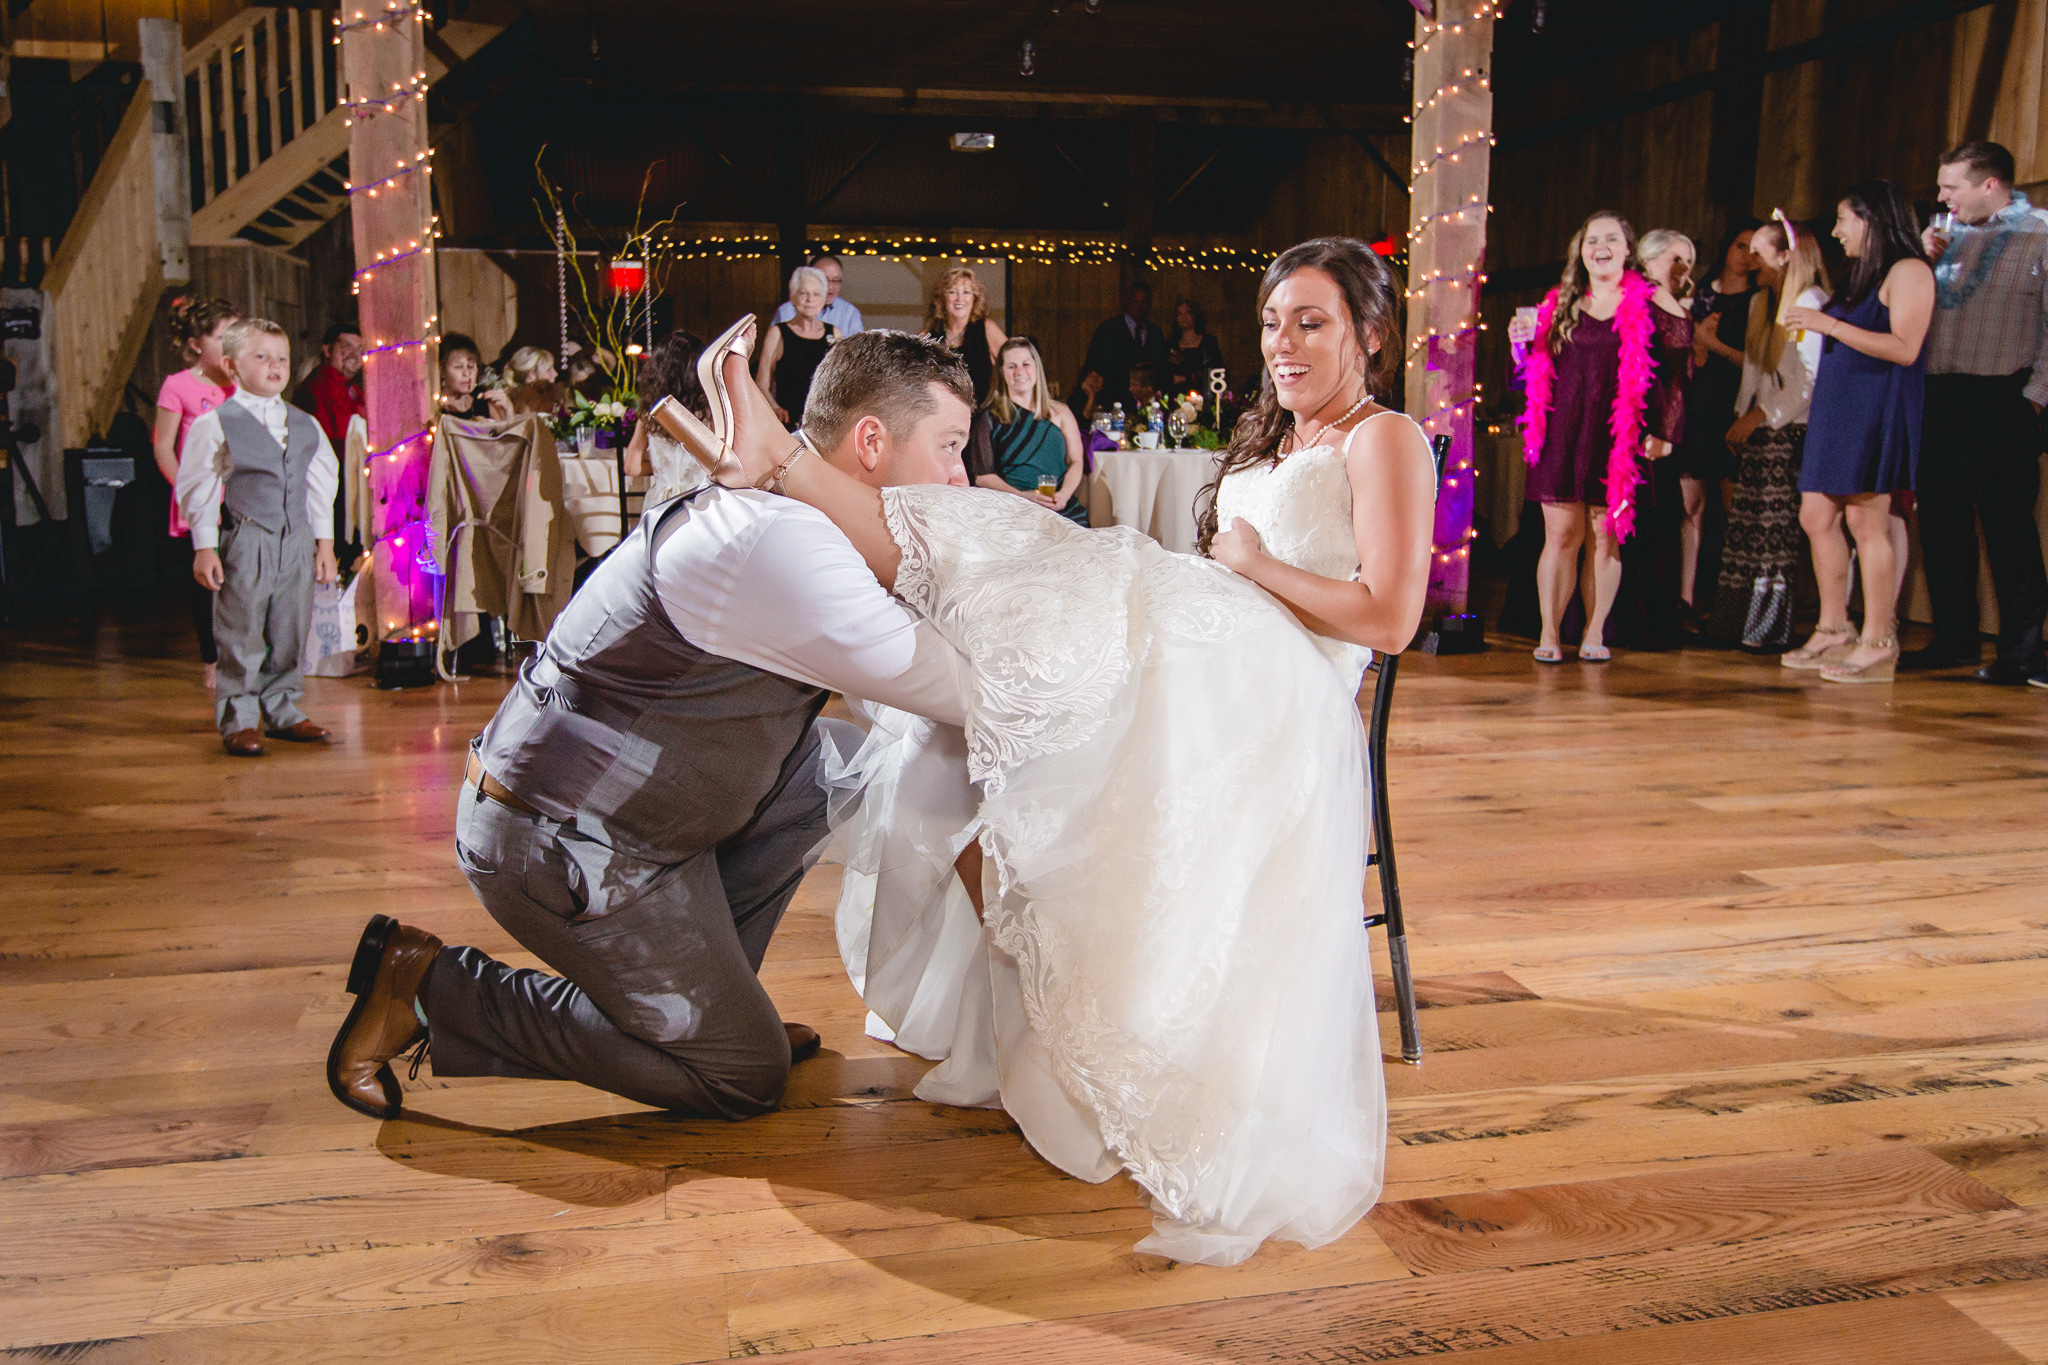 Groom searches for bride's garter at their White Barn wedding